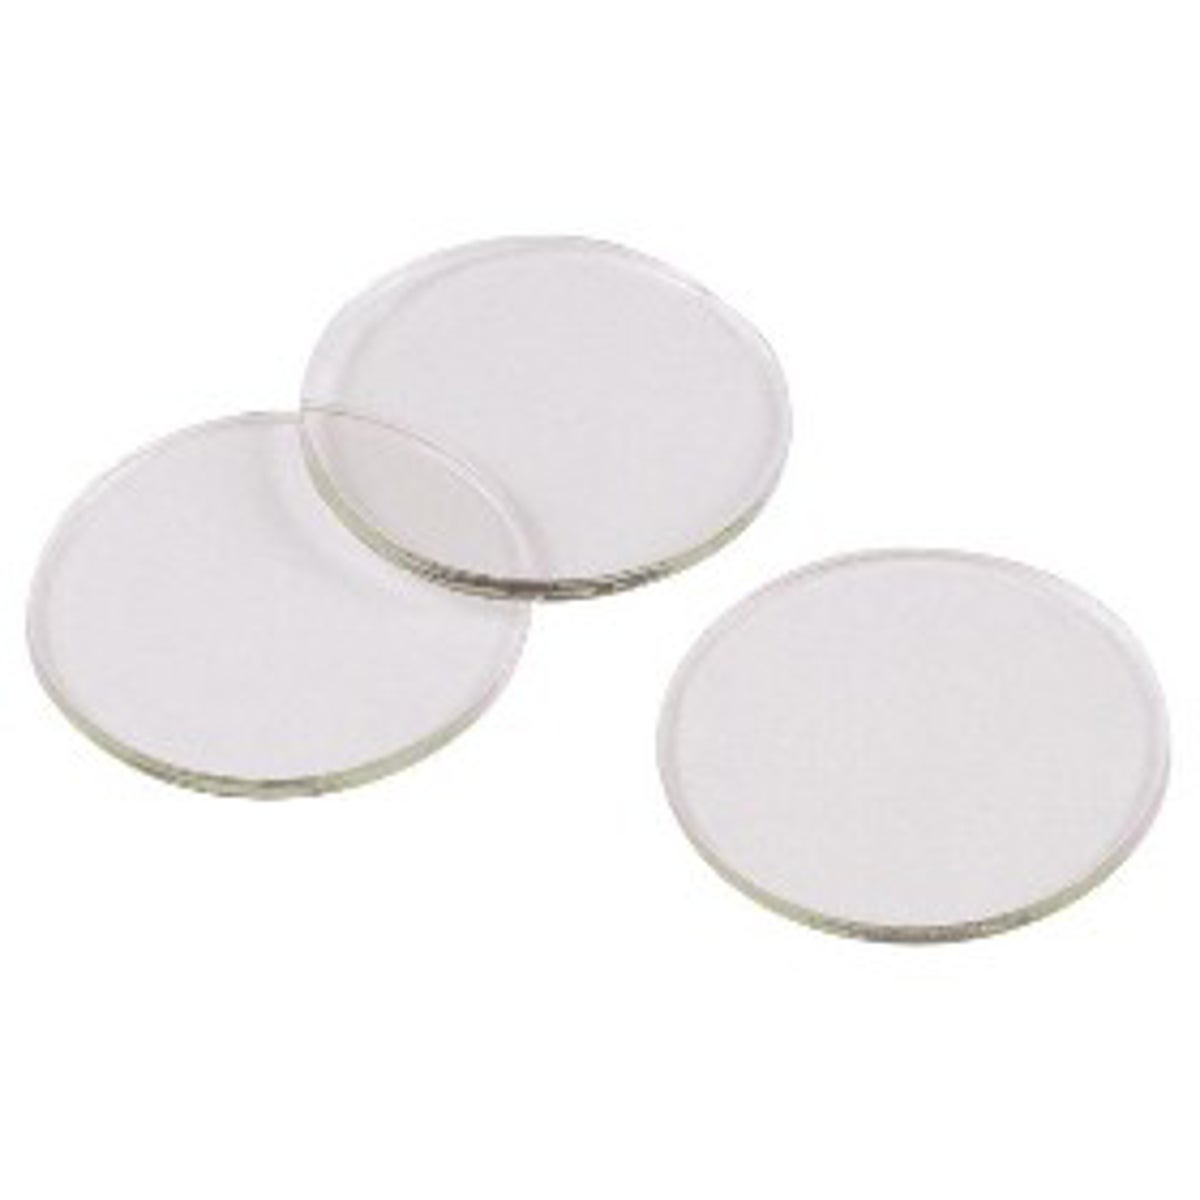 TRANSPARENT DISCS - 122285 by Hillman Fastener